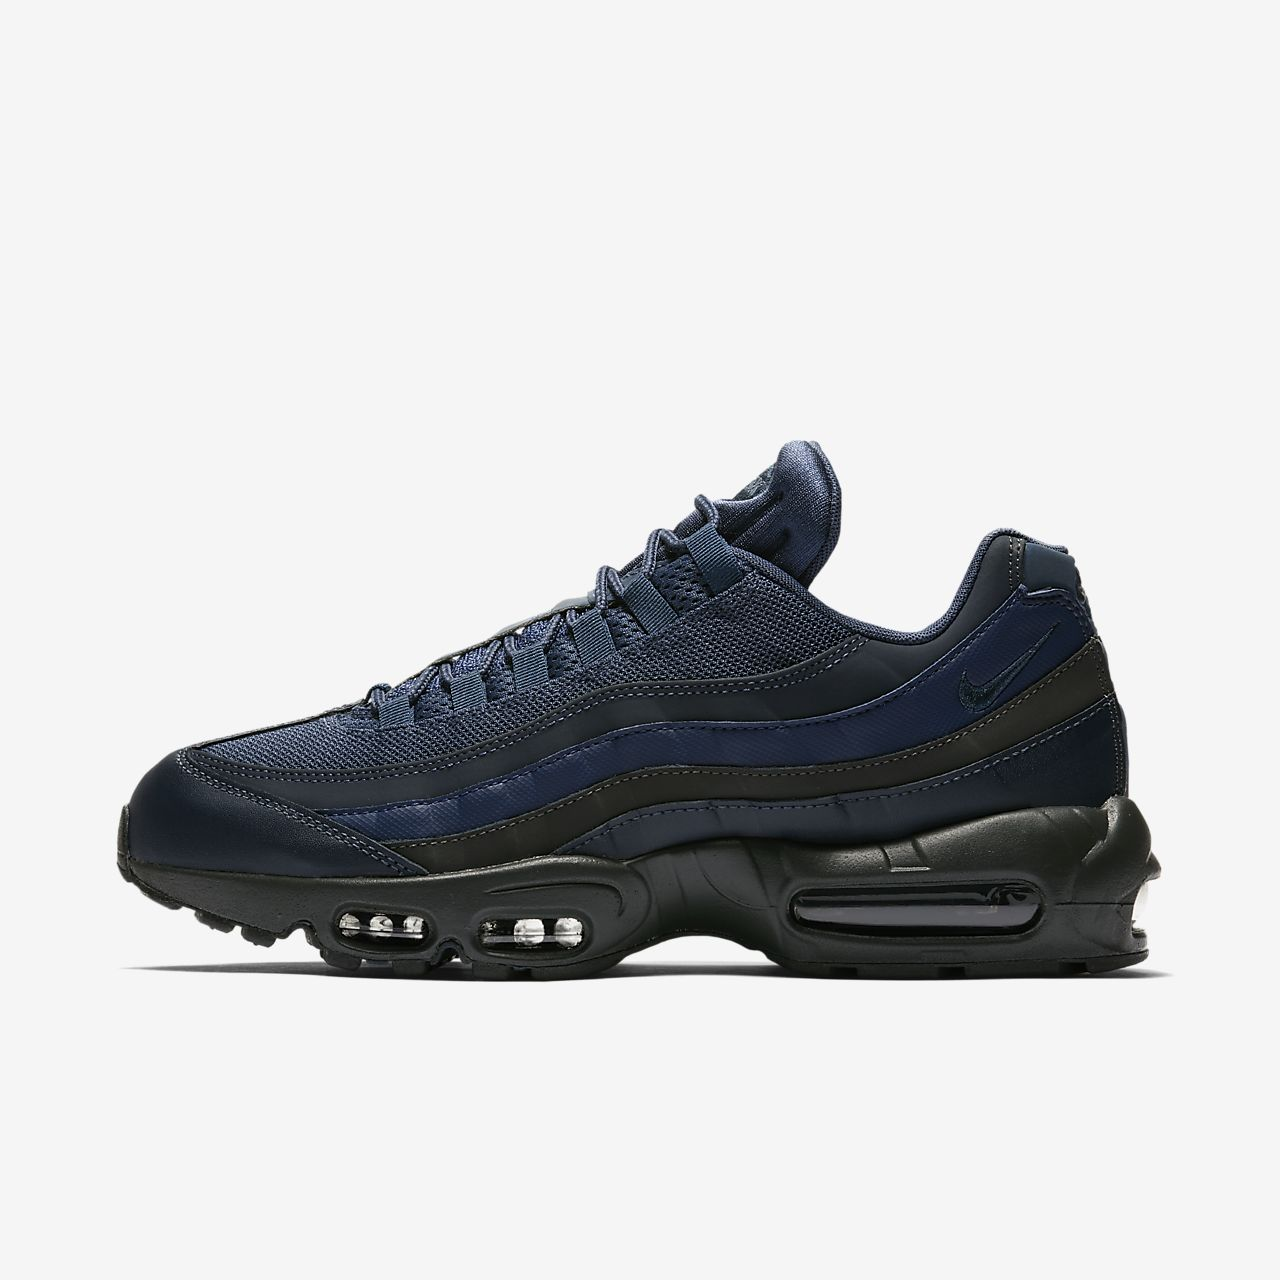 innovative design 8061e 52363 Men s Shoe. Nike Air Max 95 Essential